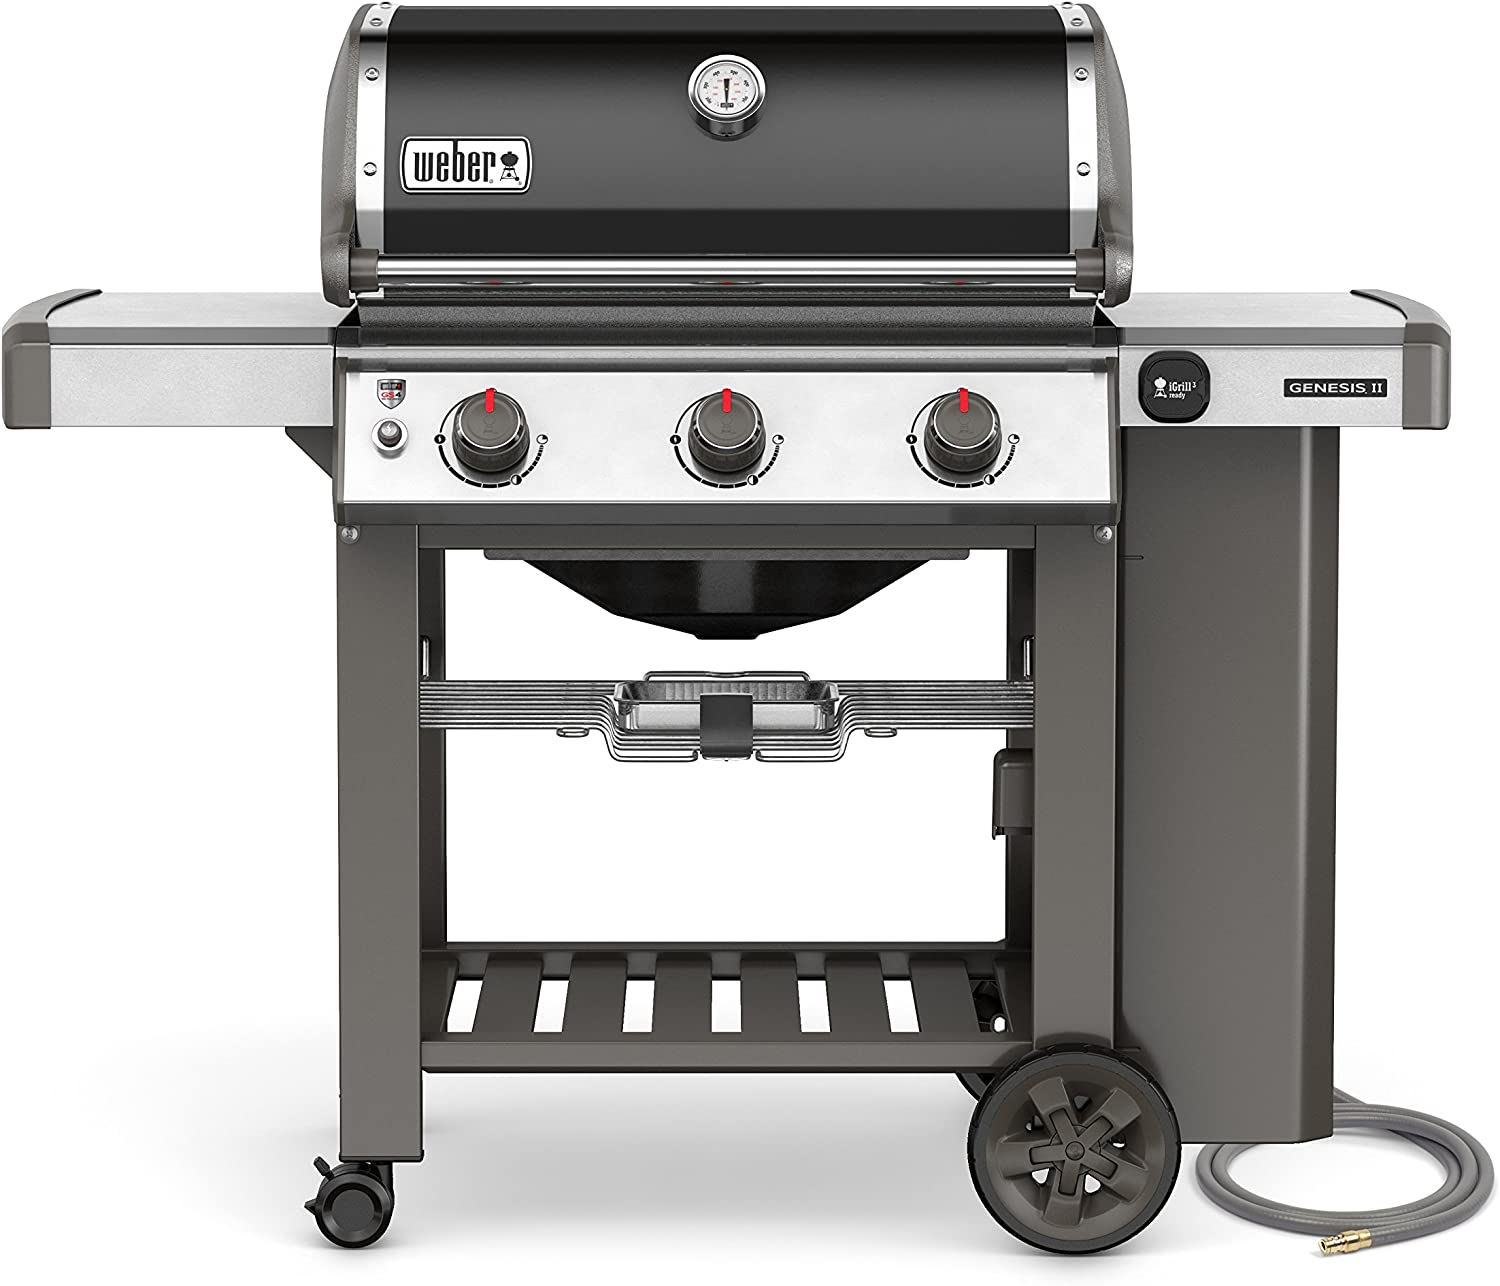 Weber Genesis II E-210 reviews